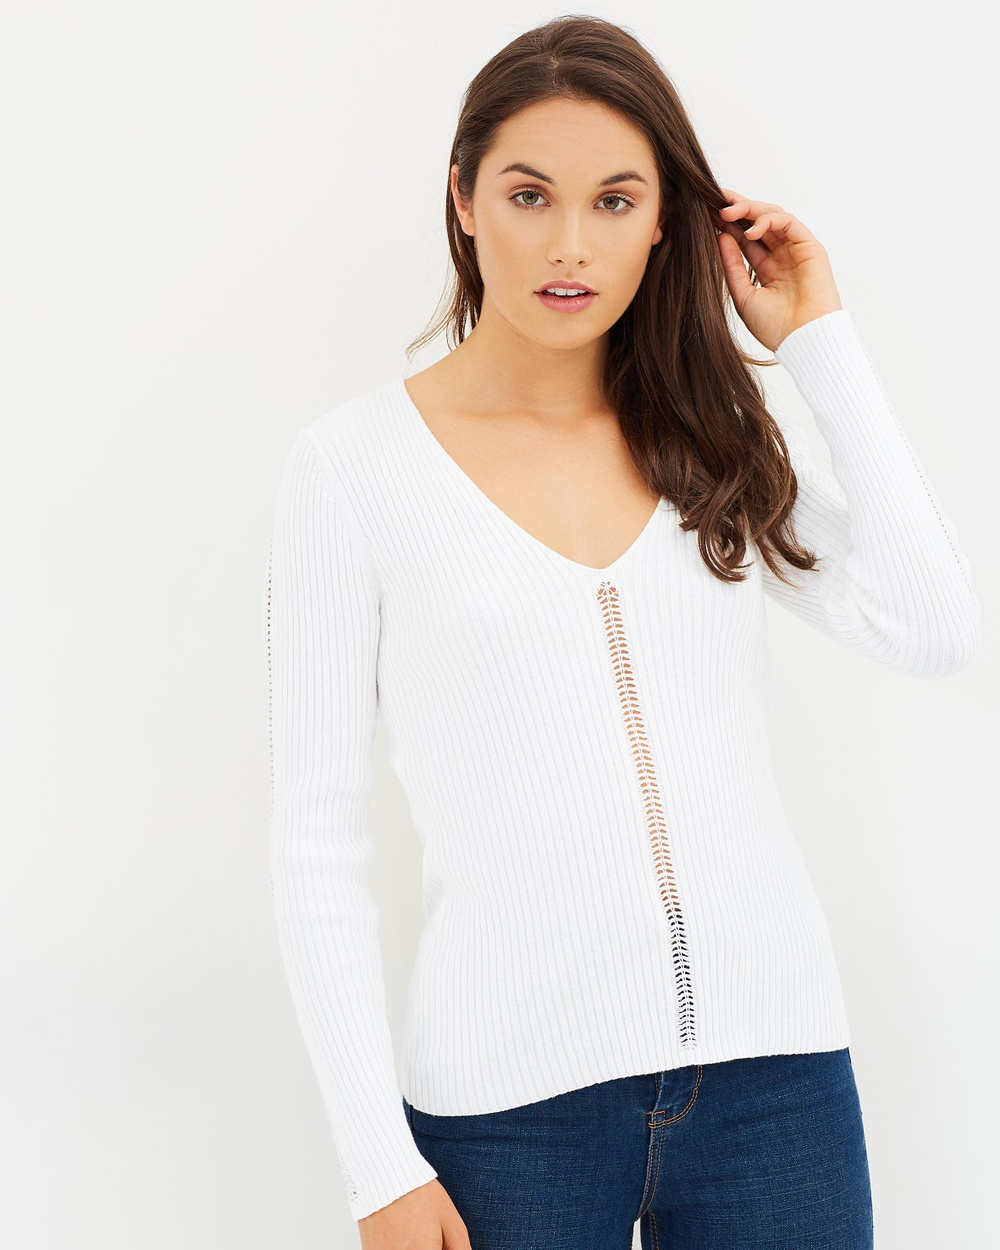 French Connection Lois Mozart Top Tops Summer White Lois Mozart Top